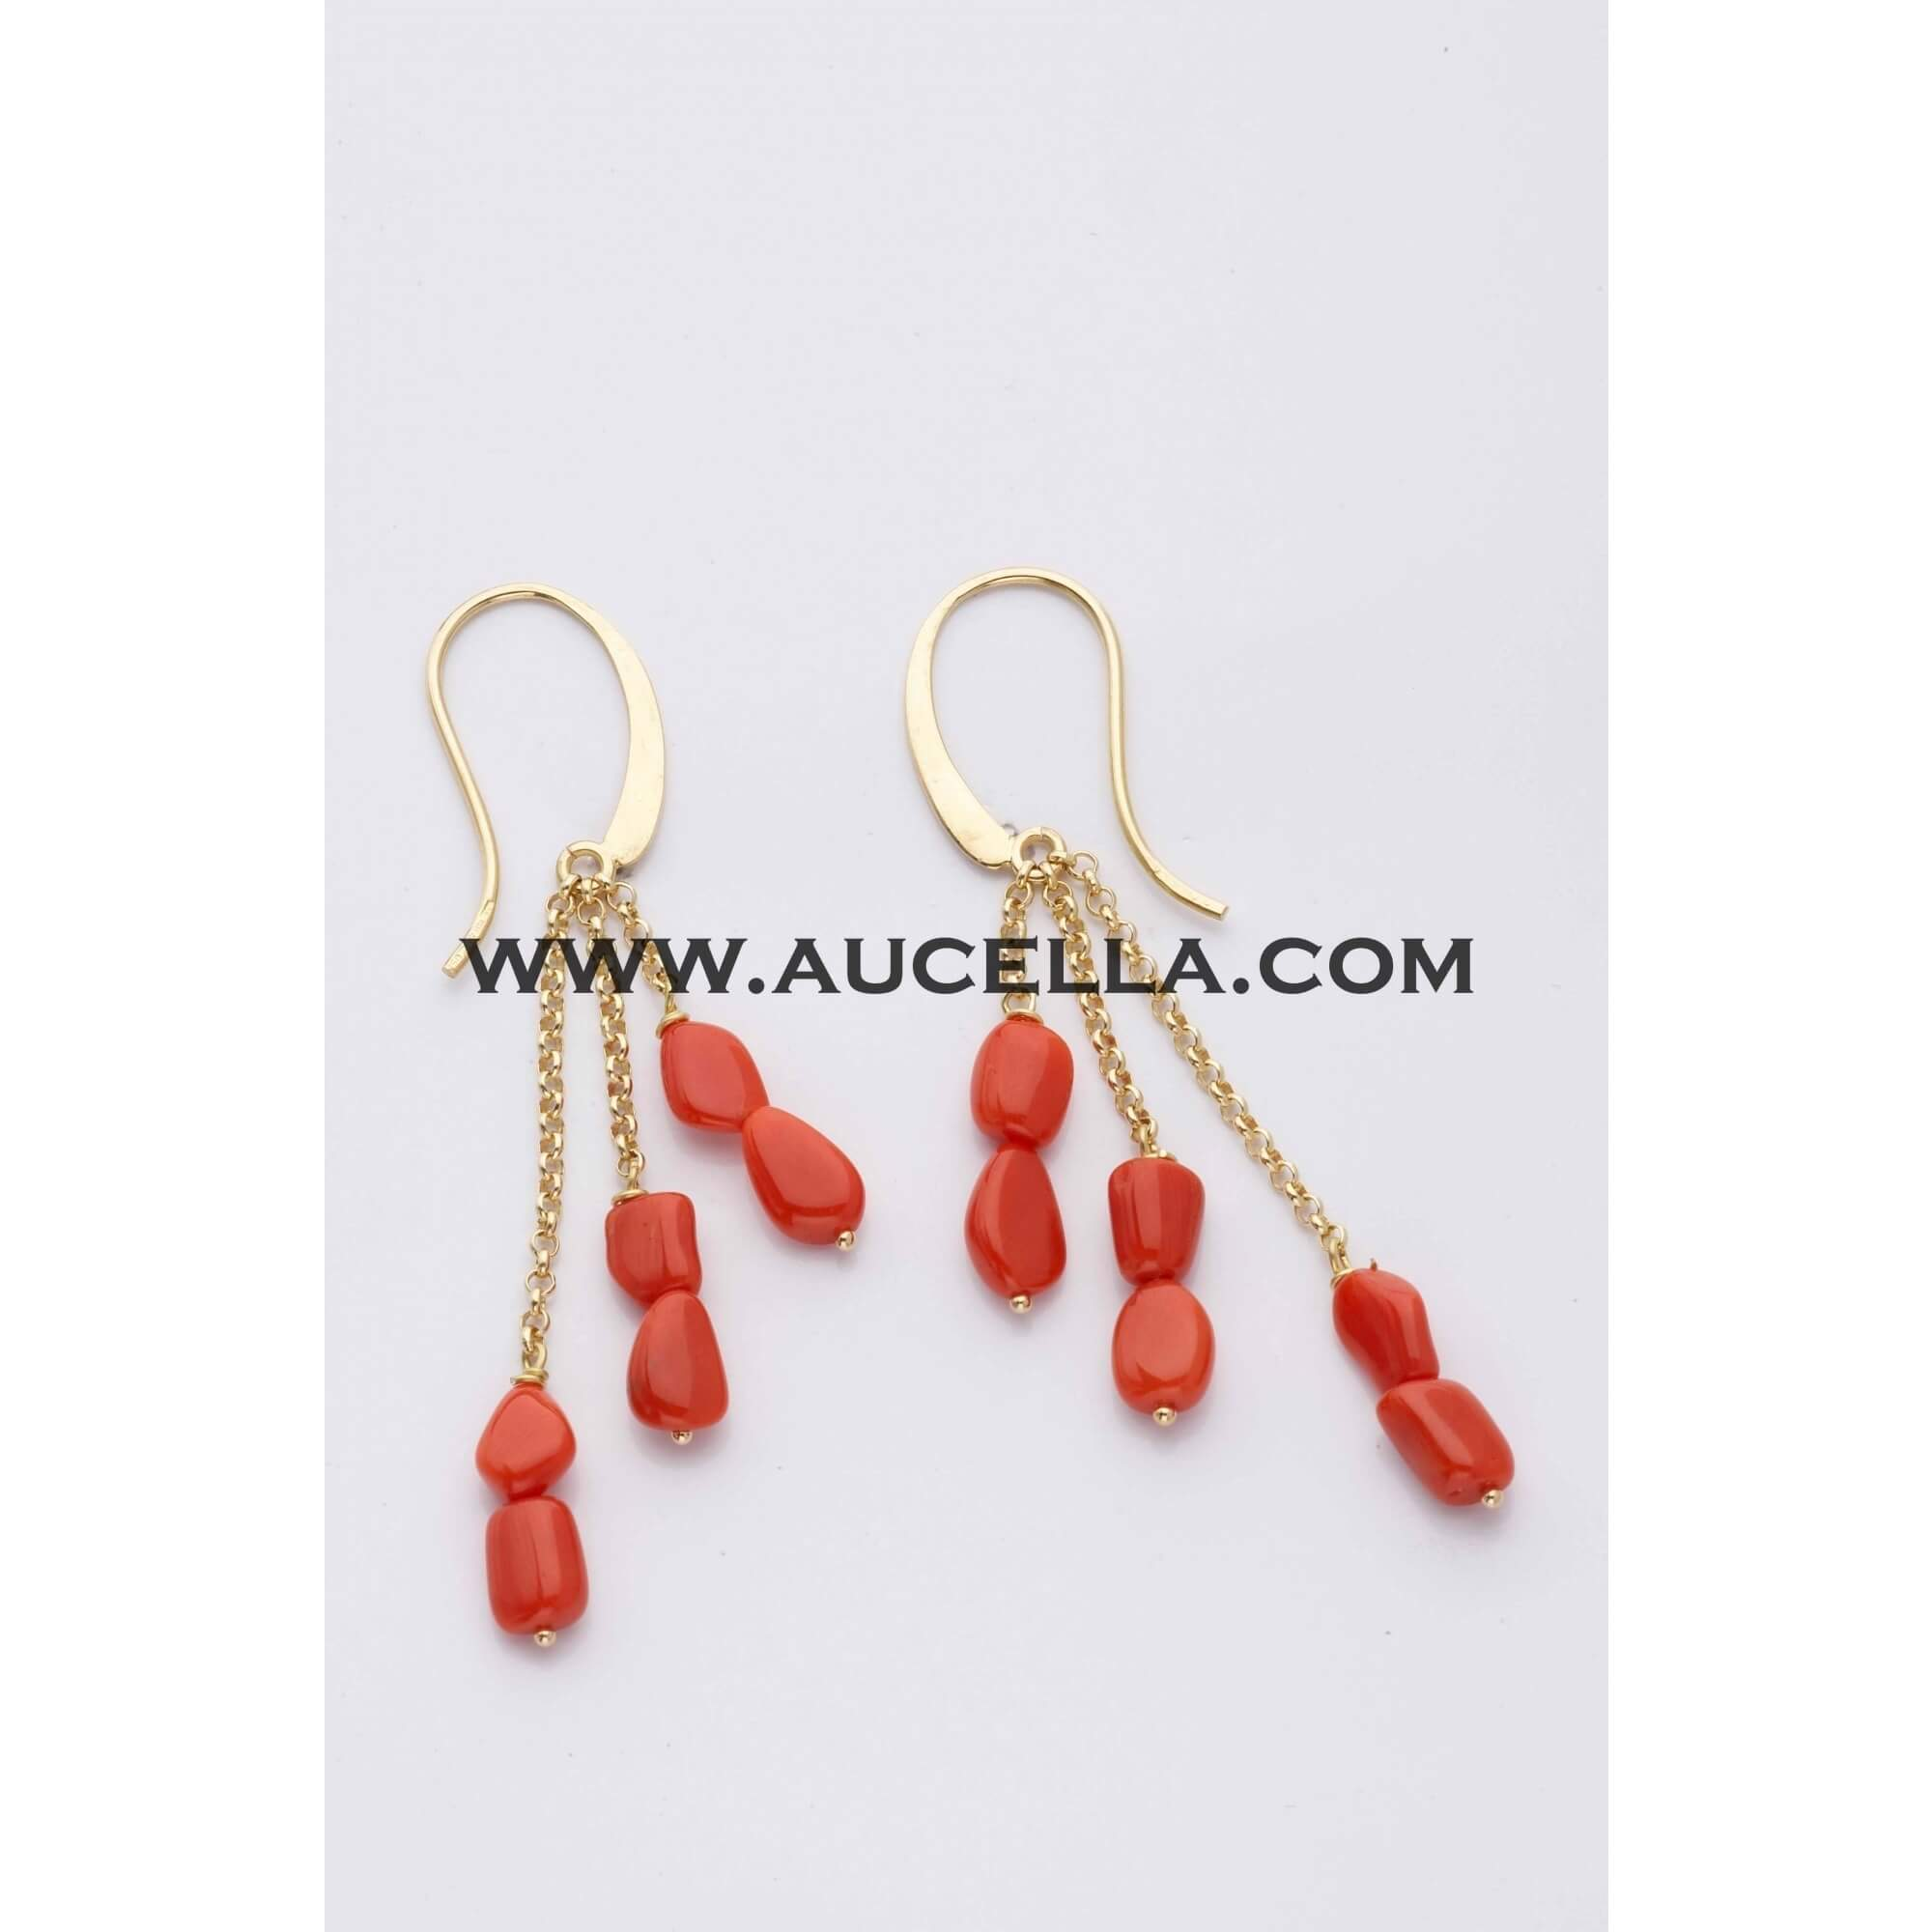 Necklaces set in gold with red natural coral